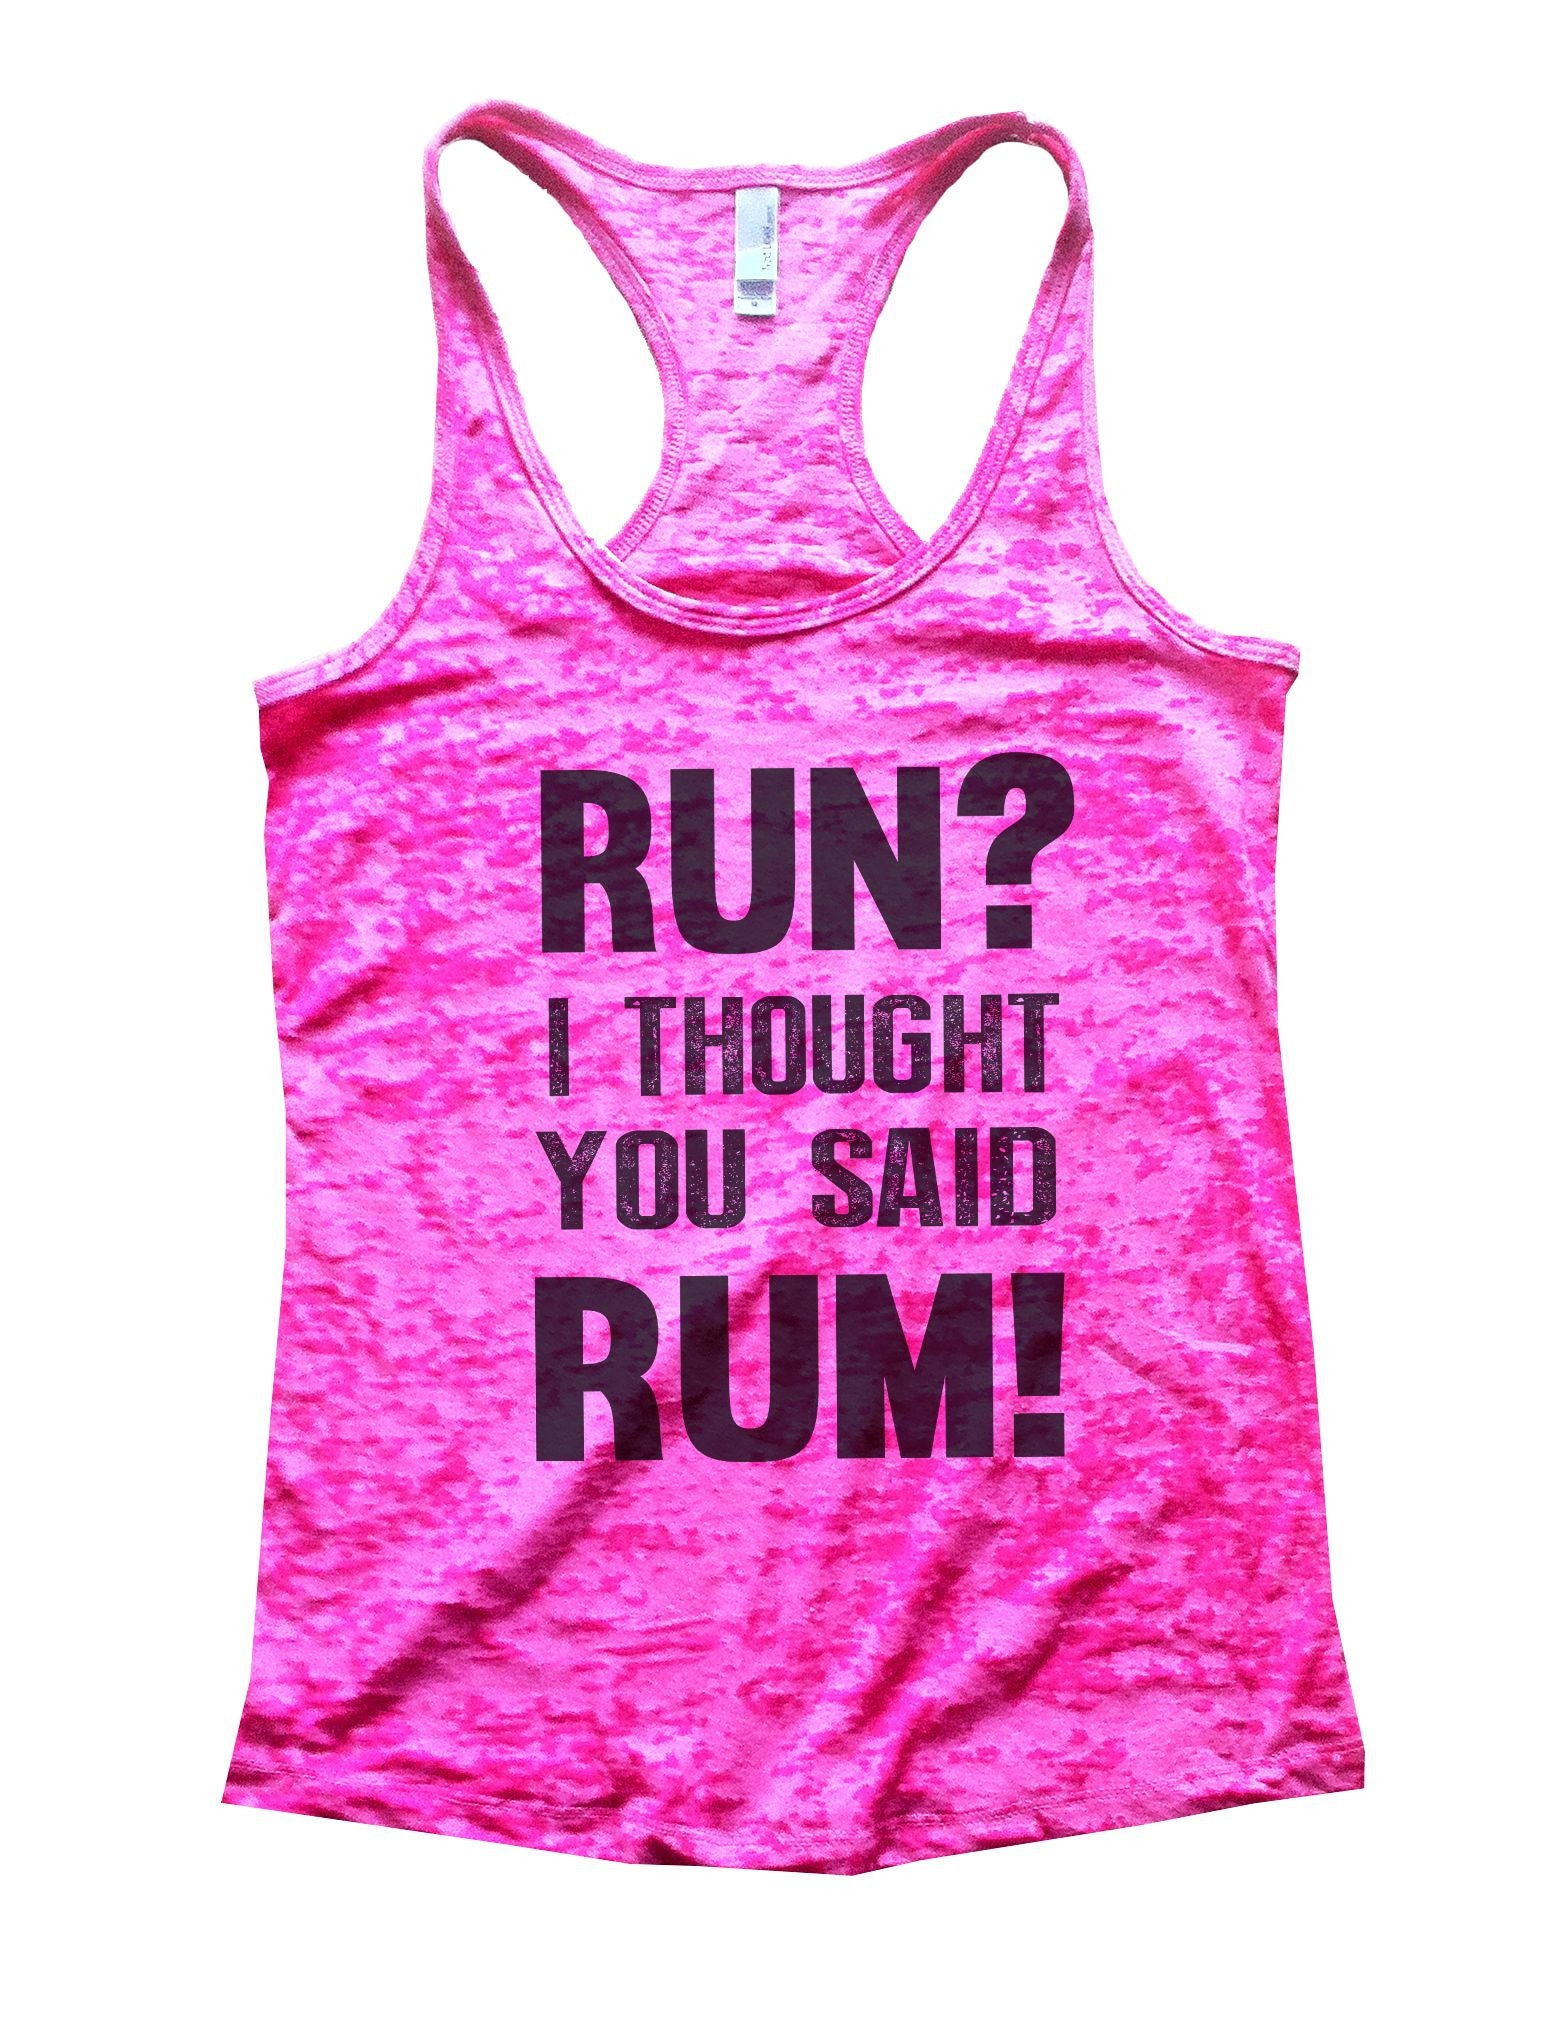 Run? I Thought You Said Rum! Burnout Tank Top By BurnoutTankTops.com - 958 - Funny Shirts Tank Tops Burnouts and Triblends  - 5